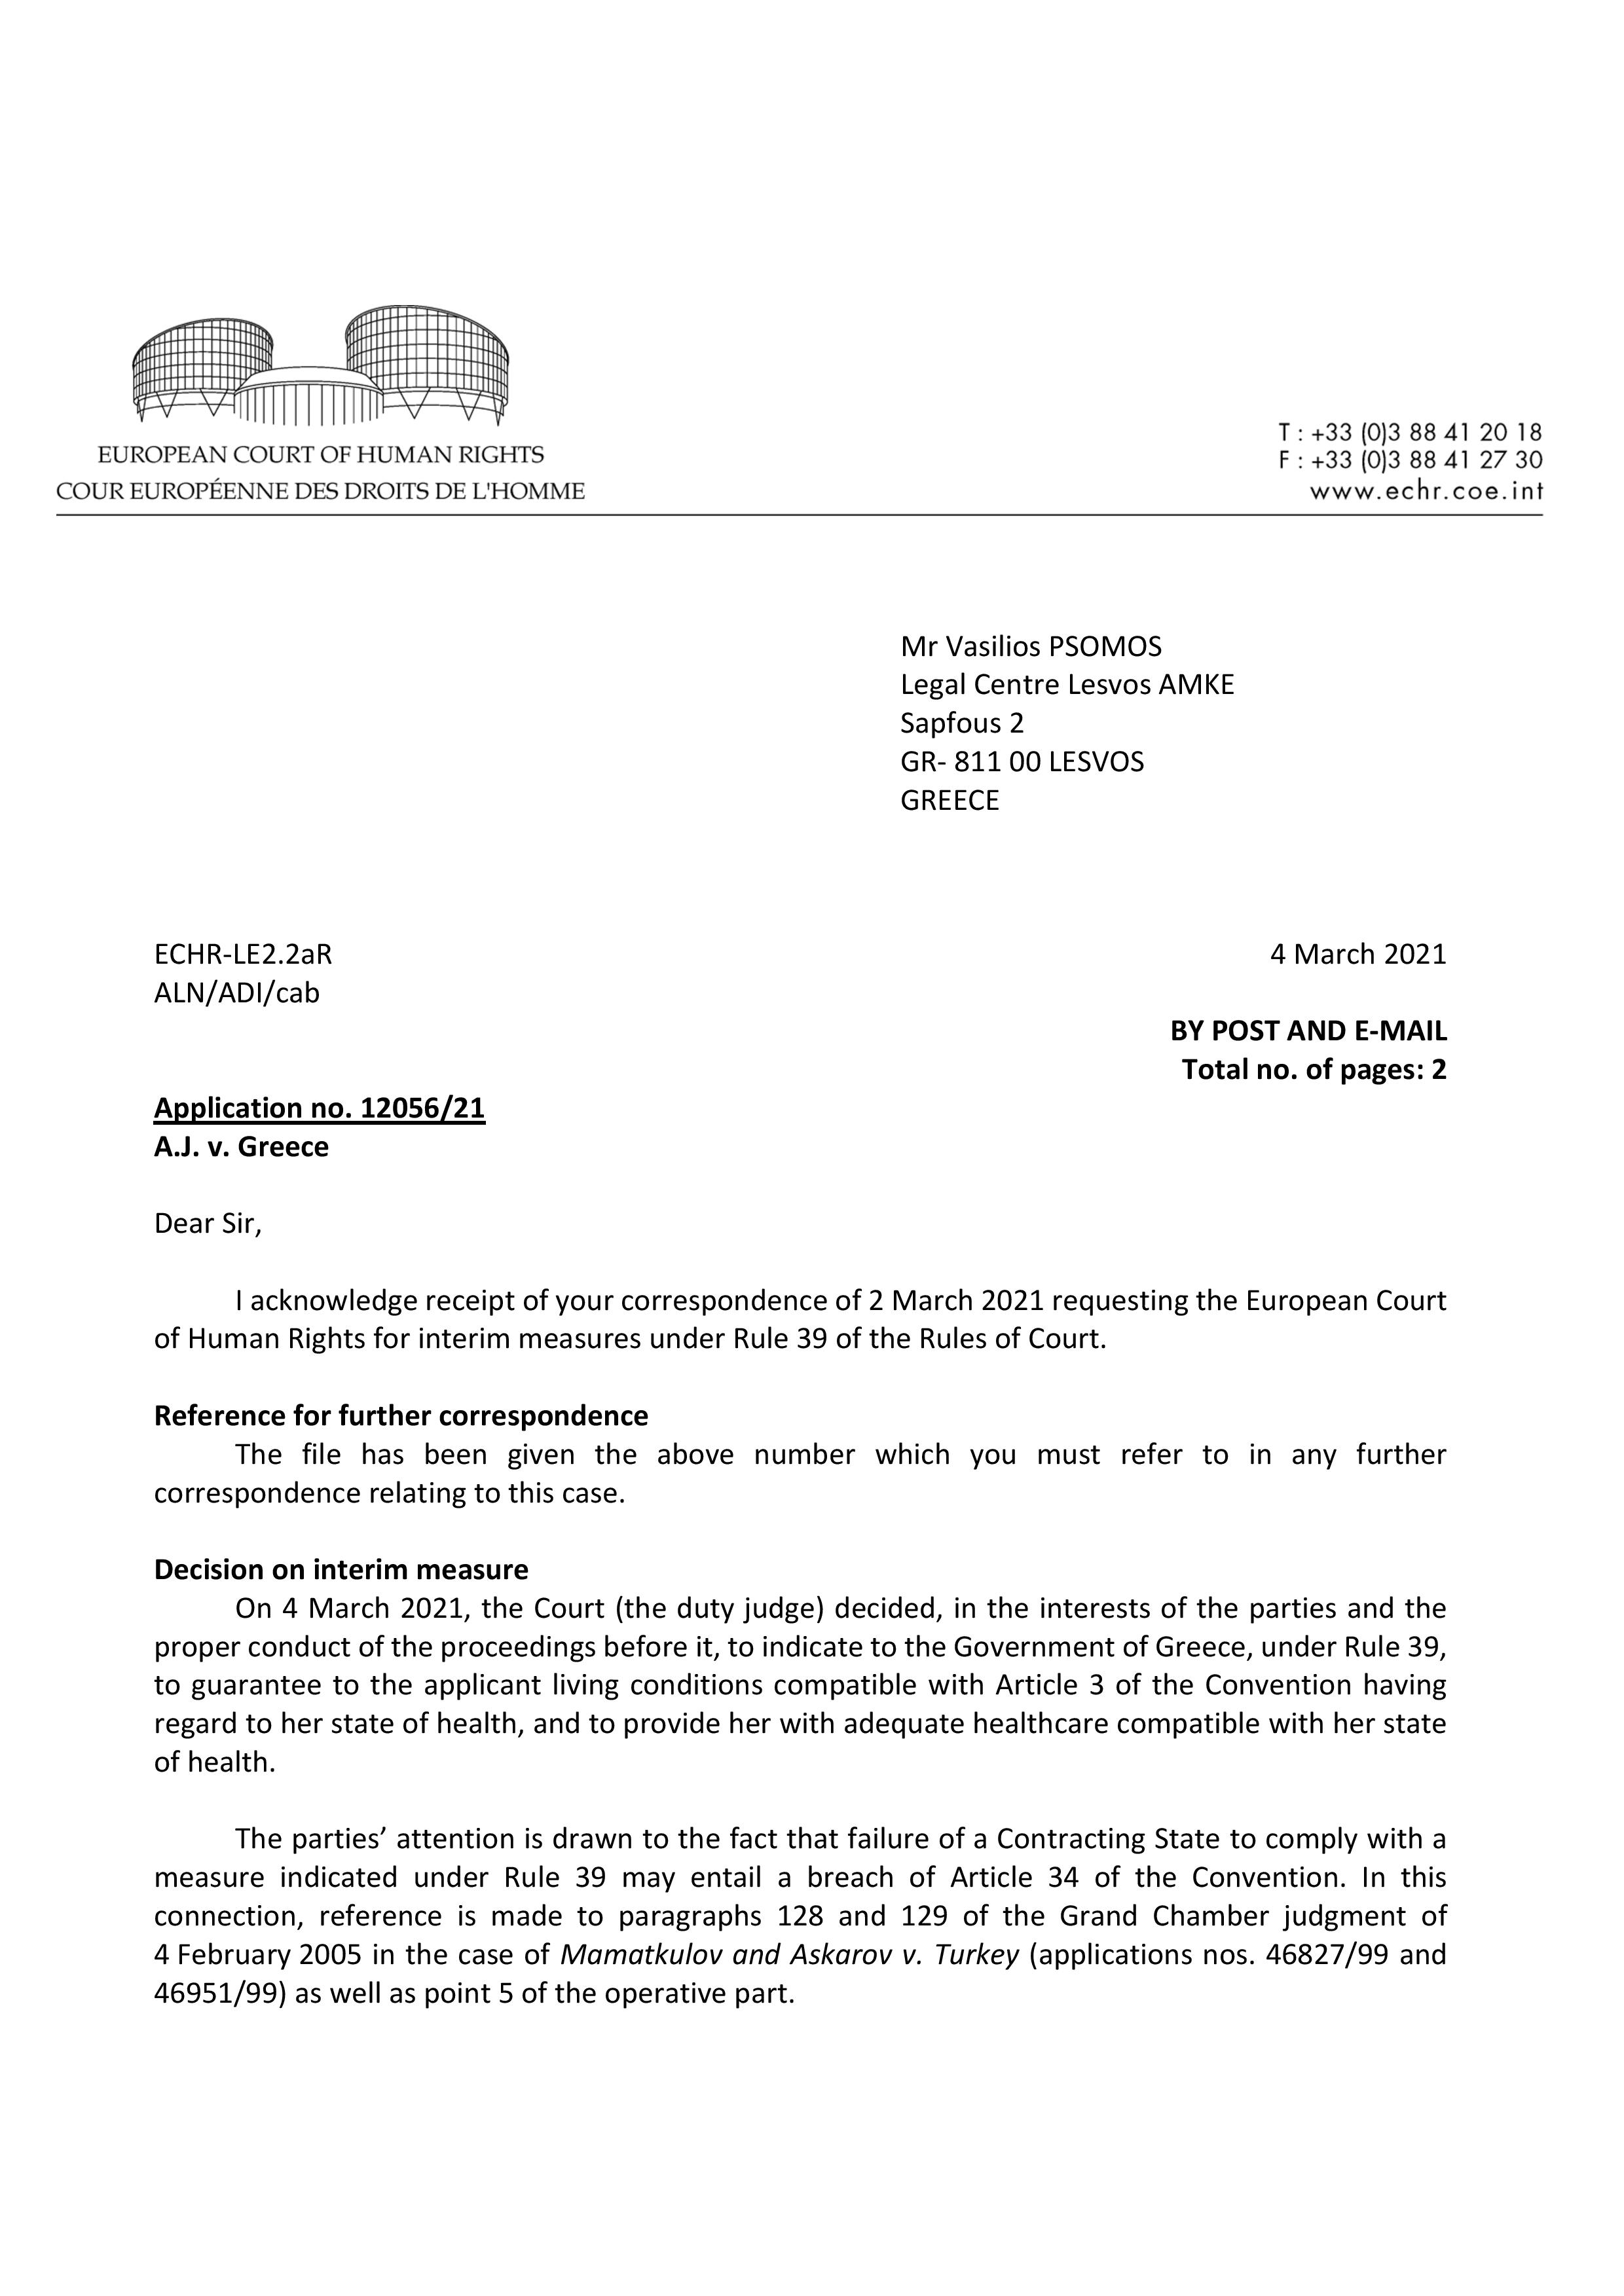 GREEK GOVERNMENT INSTRUCTED BY EUROPEAN COURT OF HUMAN RIGHTS TO GUARANTEE LIVING CONDITIONS COMPATIBLE WITH ARTICLE 3 ECHR FOR LCL CLIENT A.J.